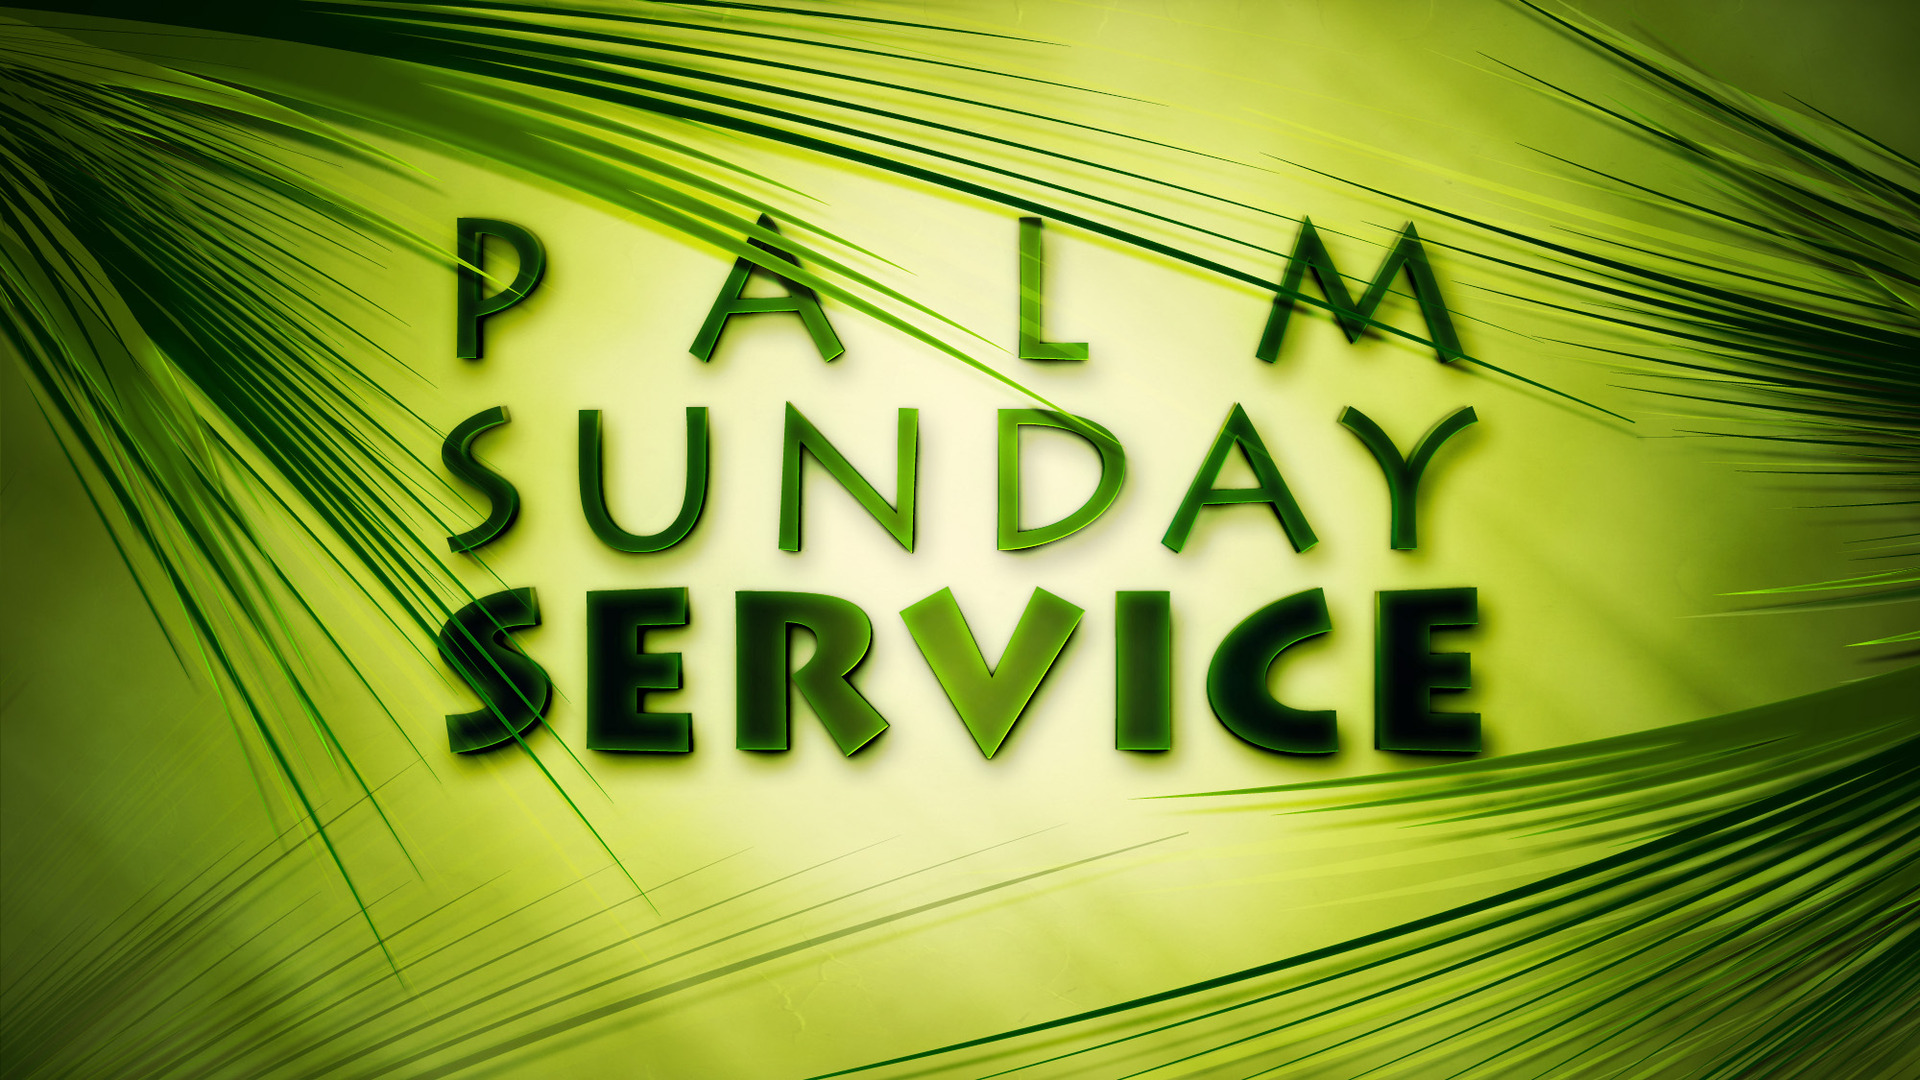 palm_sunday_service-title-2-still-16x9.jpg